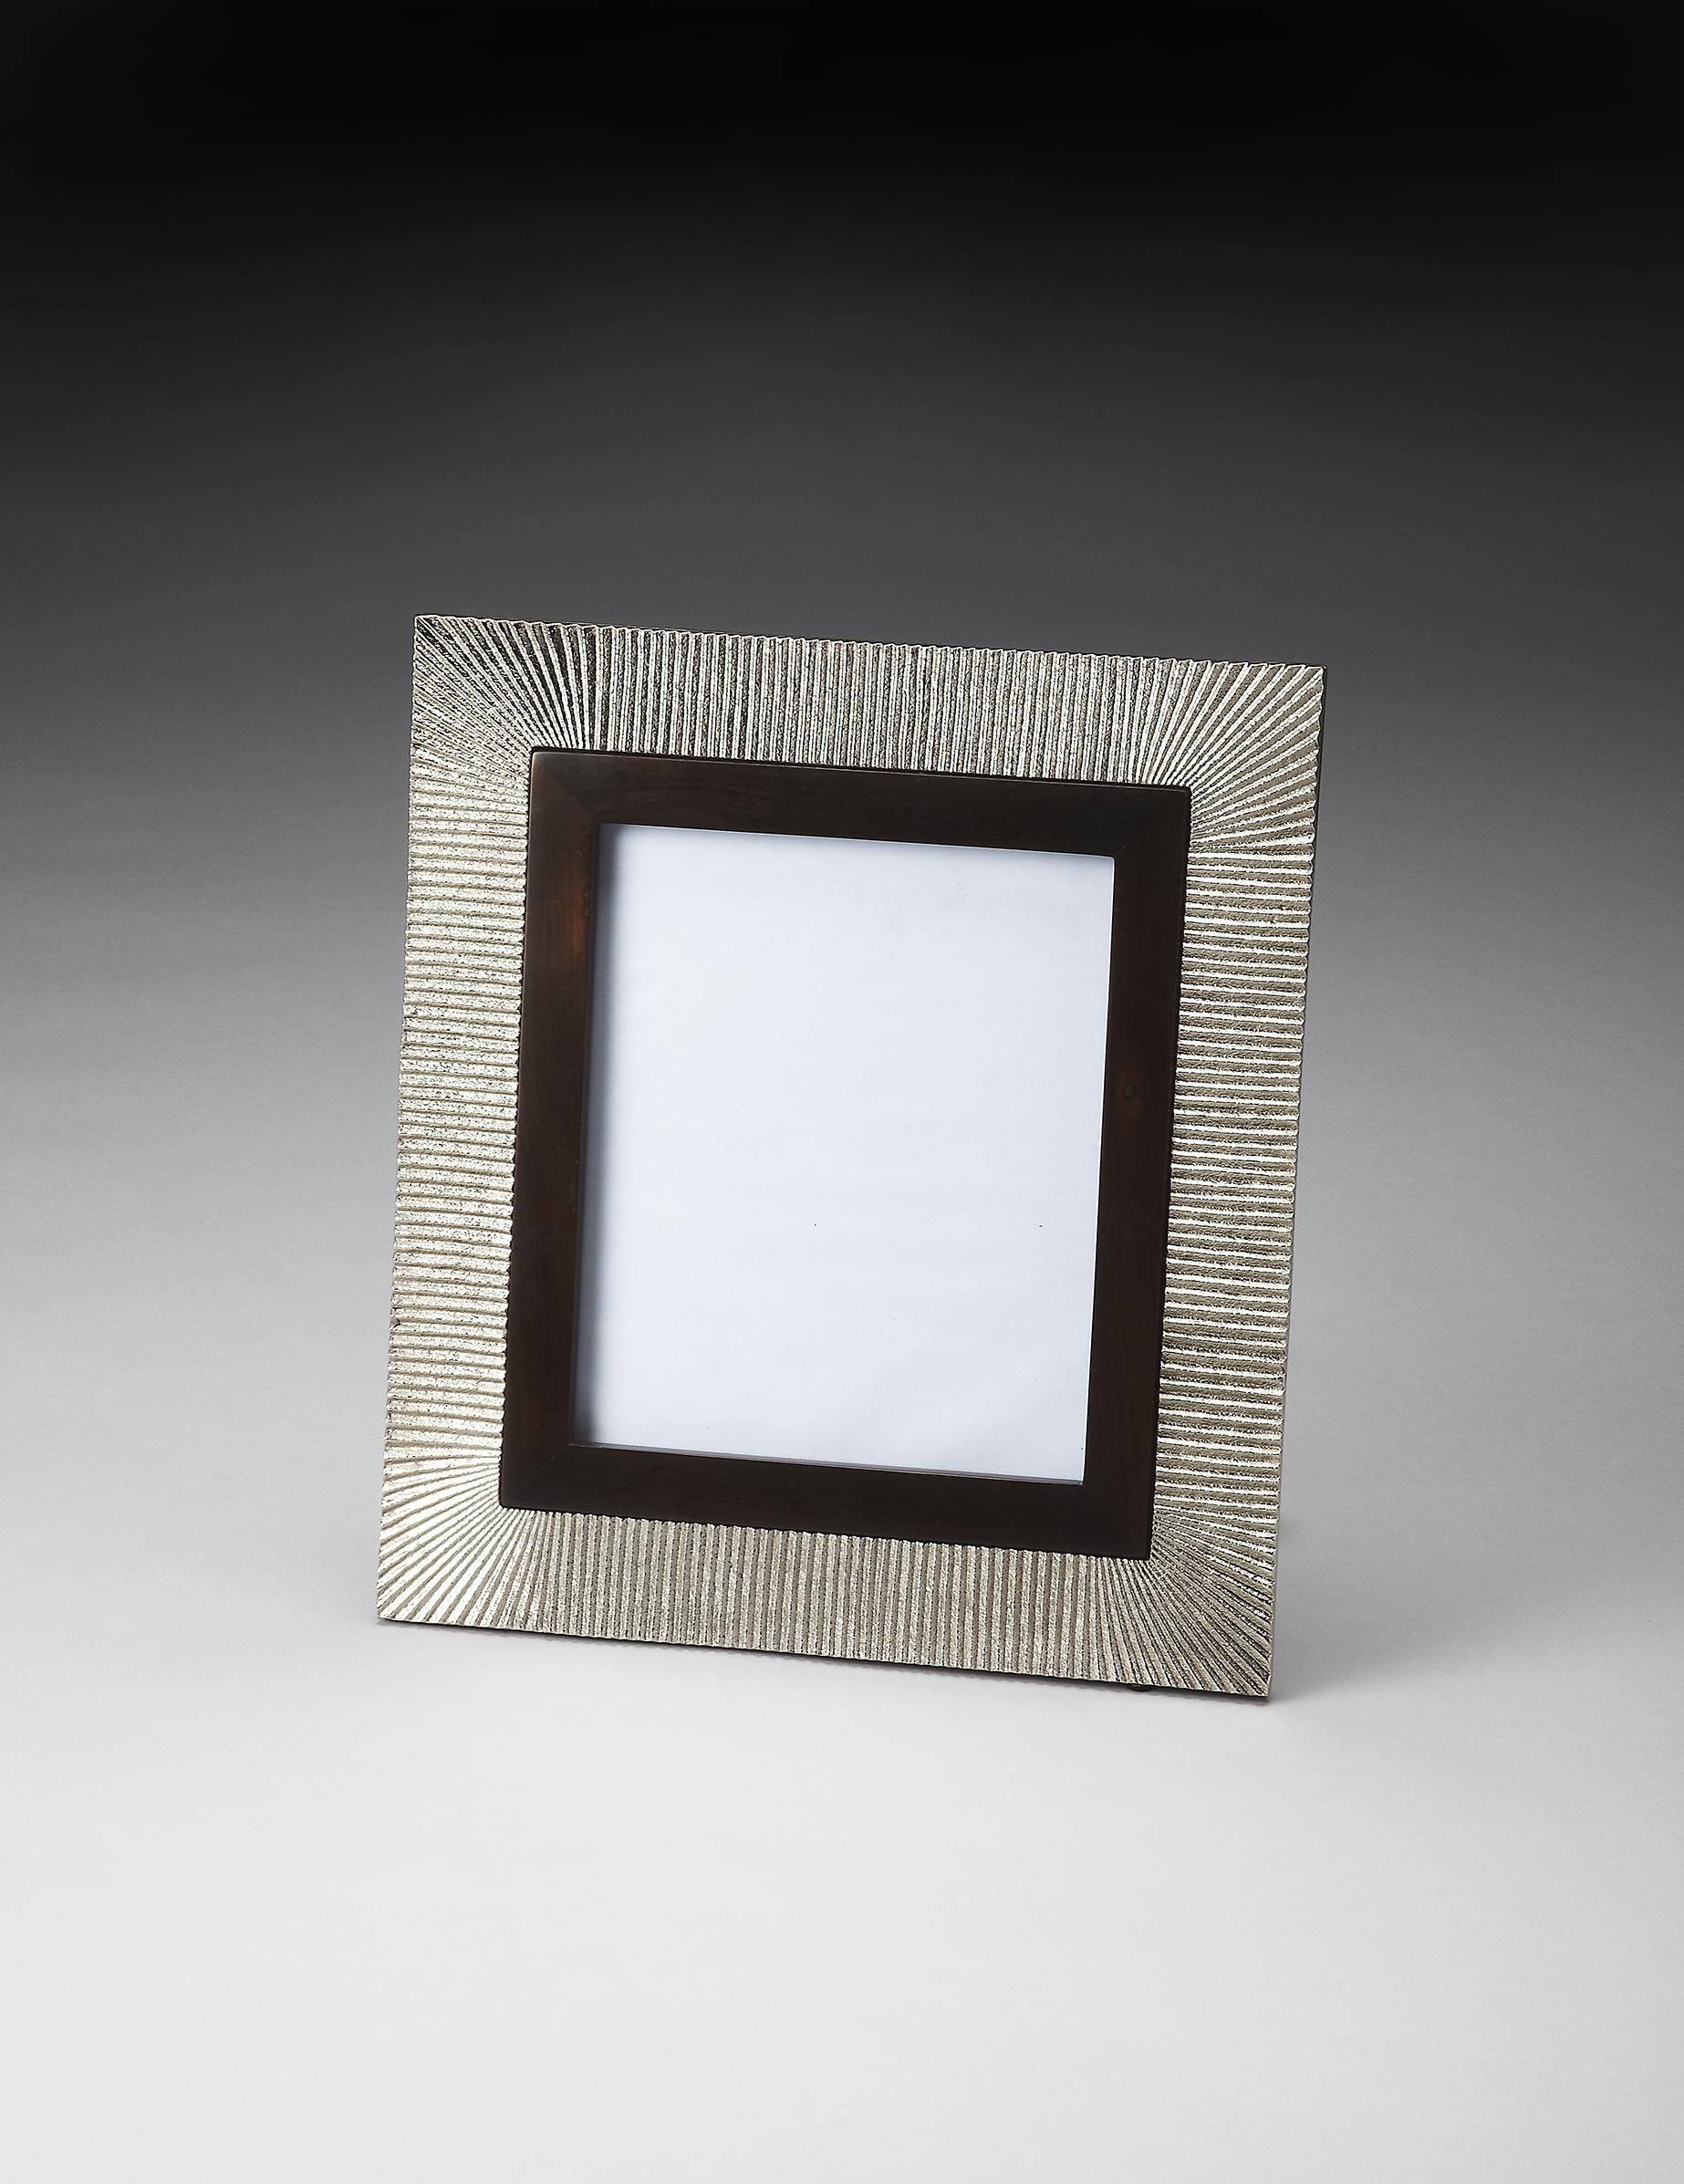 Butler Specialty Company Hors D'oeuvres Picture Frame - Item Number: 3474016